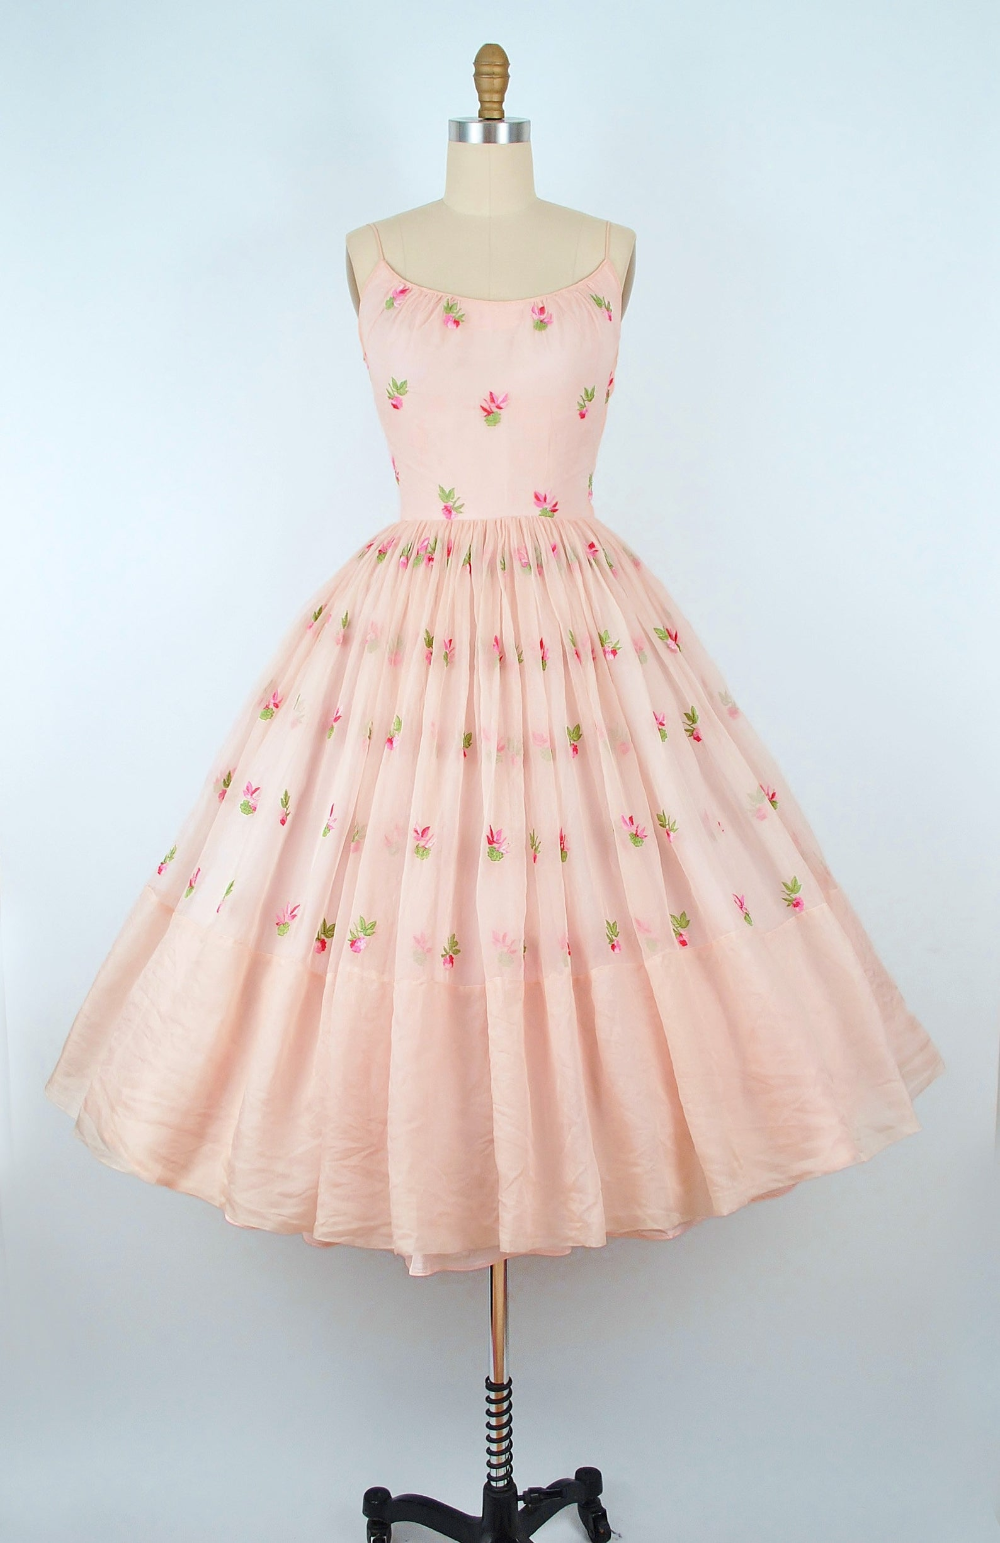 Reserved 50s Party Dress 1950s Sundress Embroidered Flowers Etsy 1950s Party Dresses Vintage 1950s Dresses 1950s Dress [ 1543 x 1000 Pixel ]